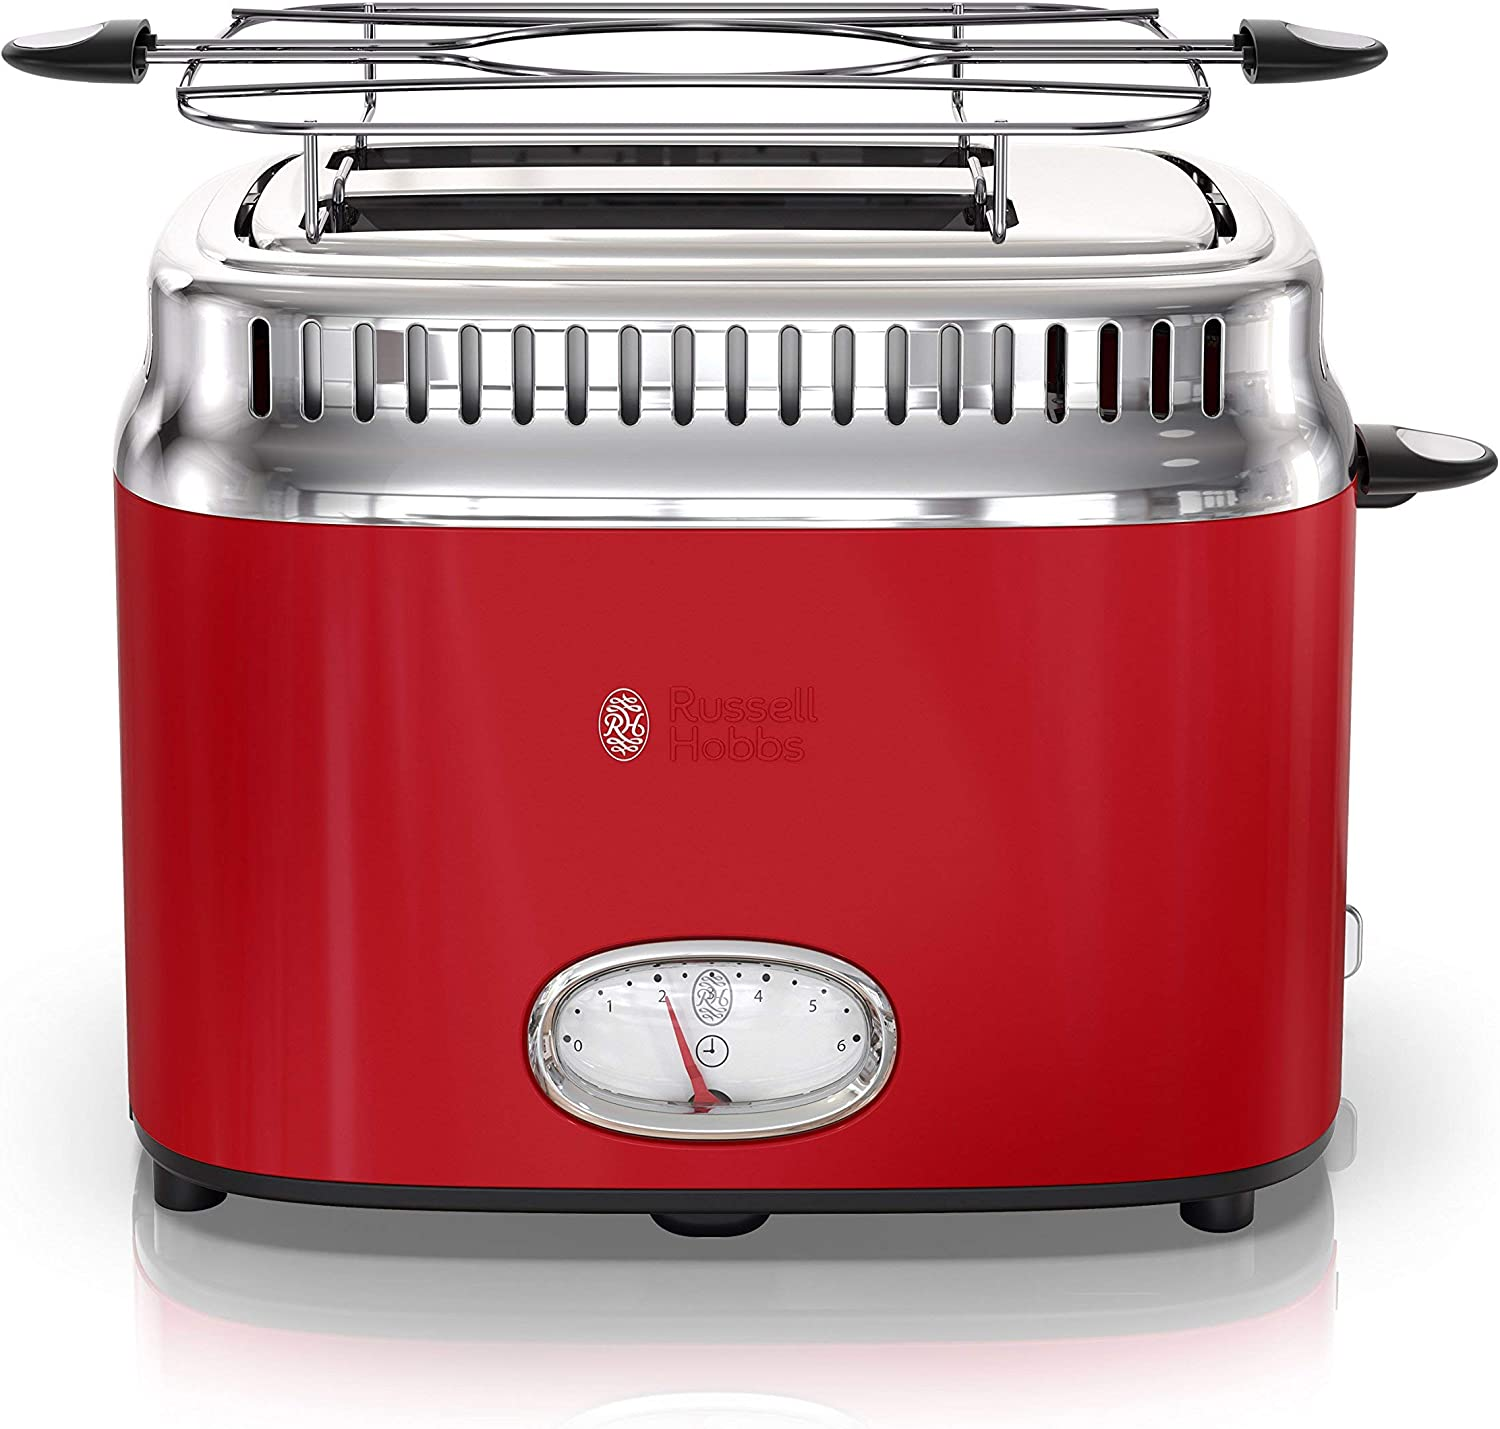 Russell Hobbs 2-Slice Retro Style Toaster, Red & Stainless Steel, TR9150RDR (Renewed)